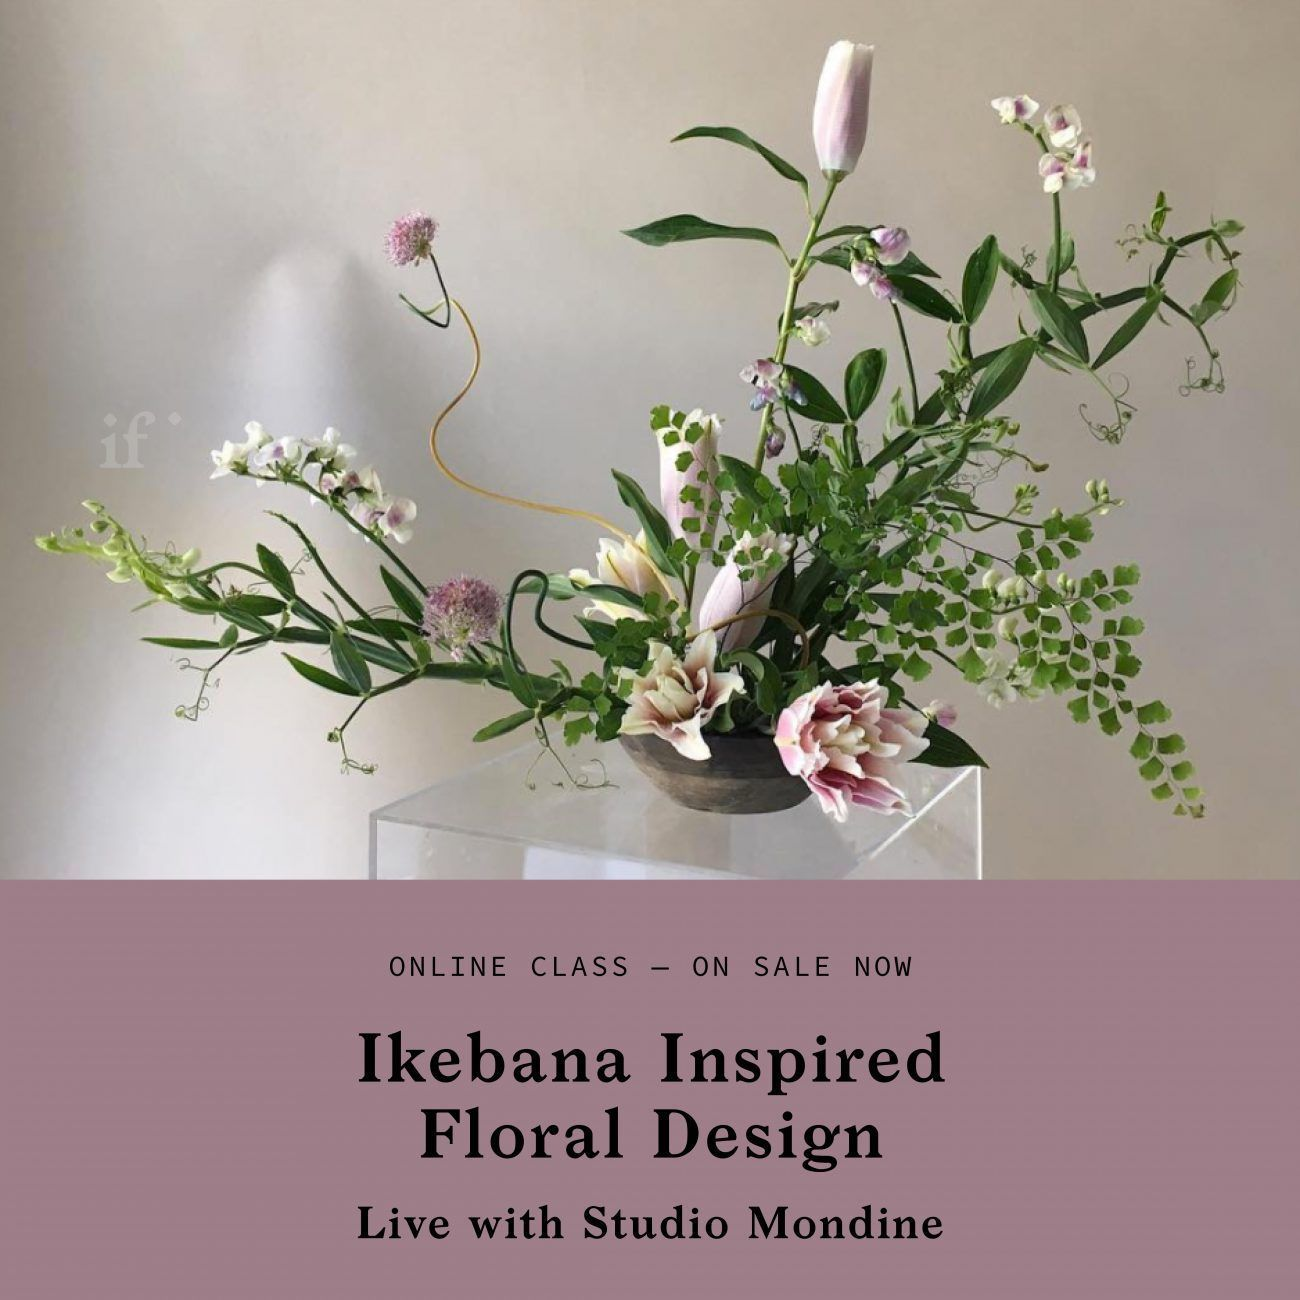 Ikebana Inspired Floral Design with Studio Mondine